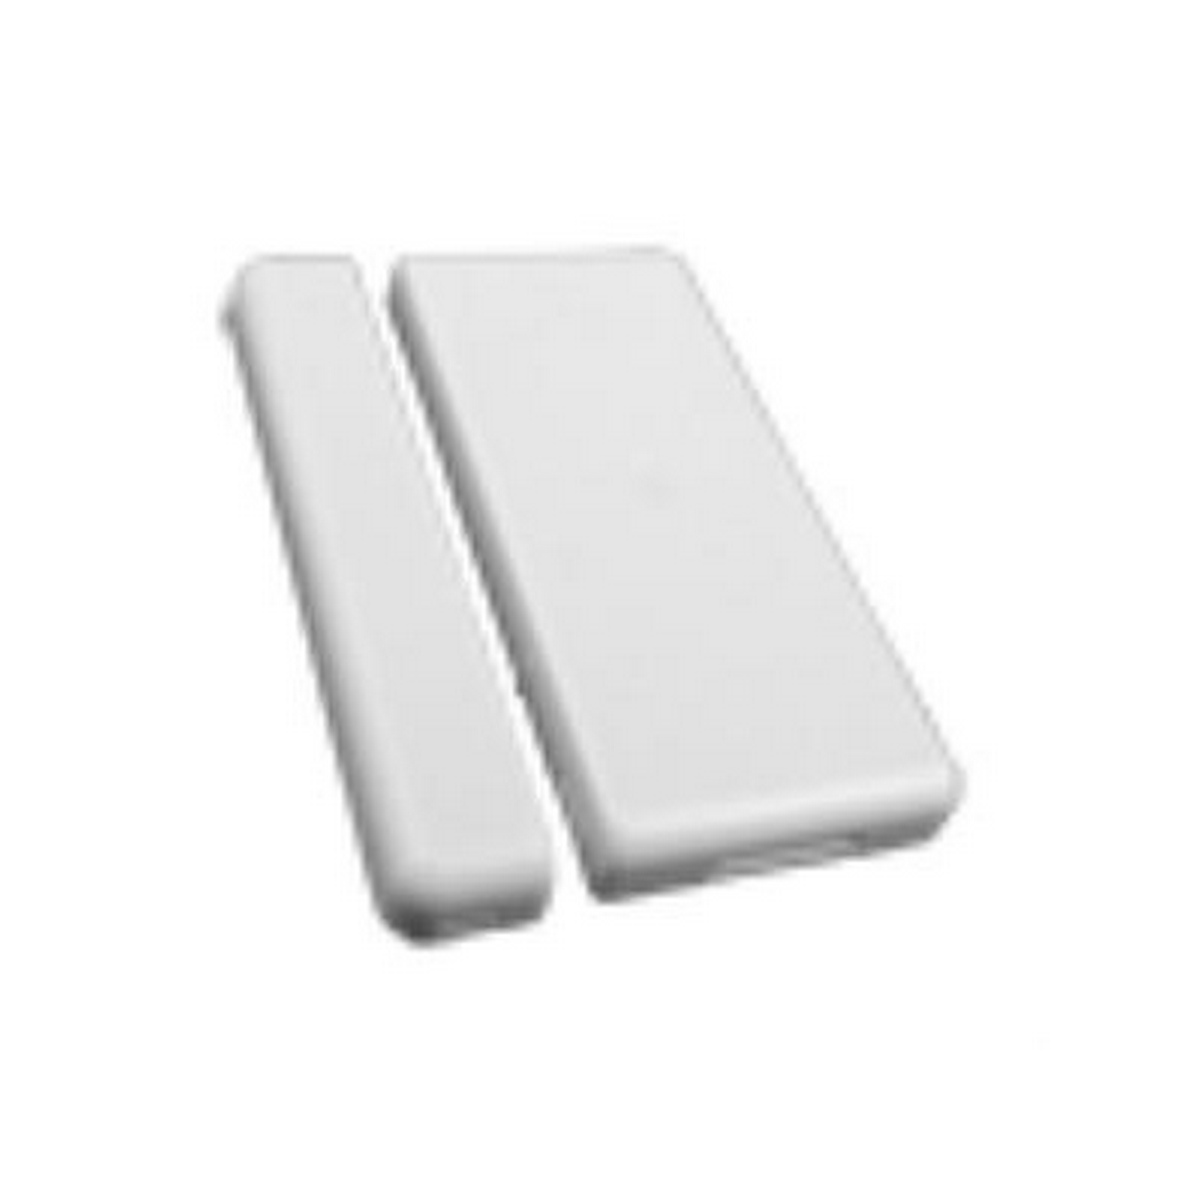 Wireless Mini Window Sensor, Two-Way for M1XRFTW Transceiver